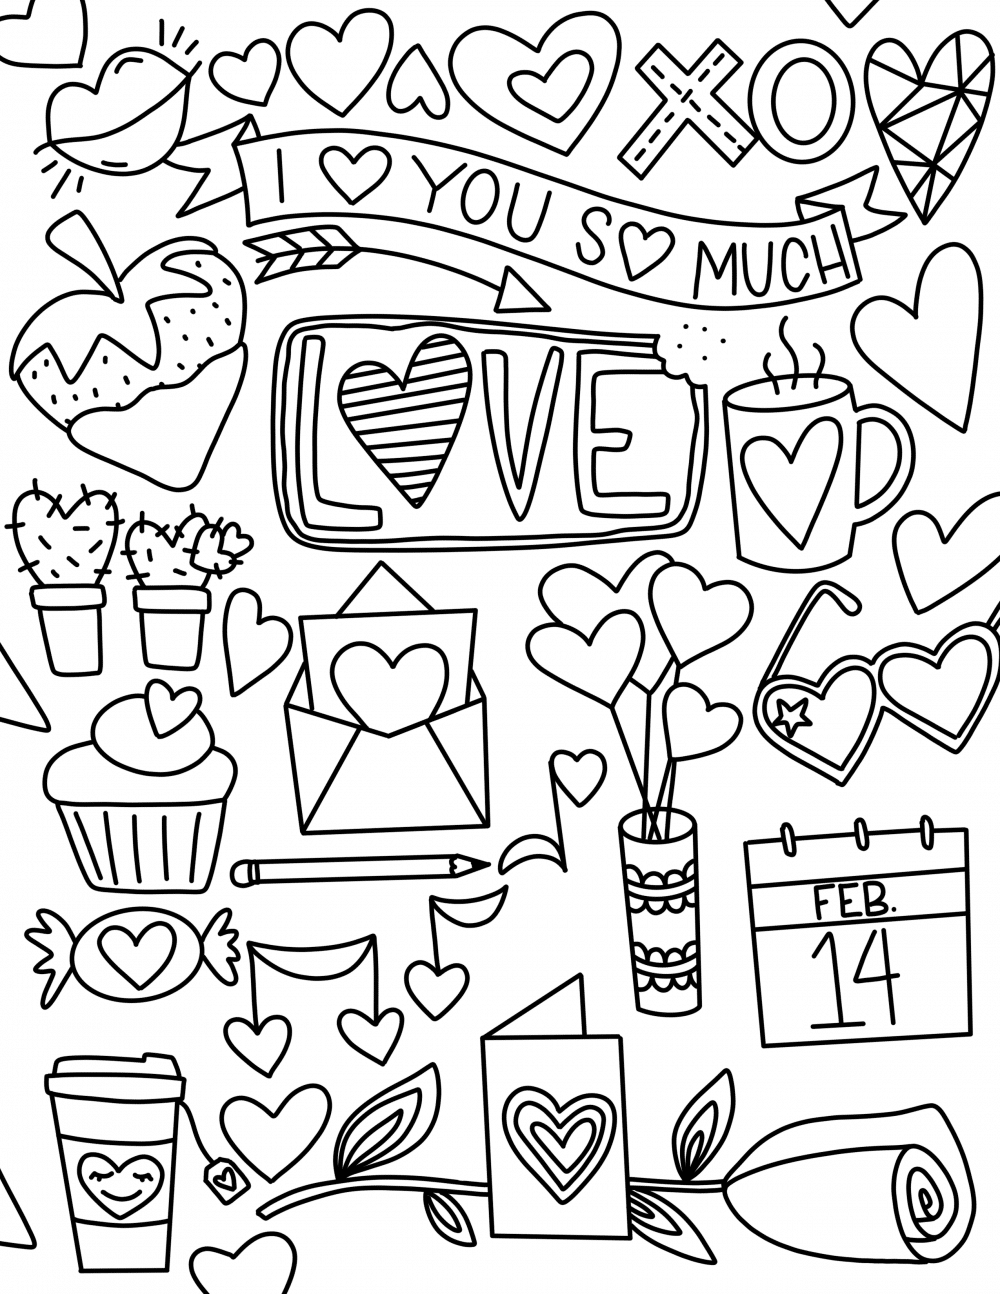 valentine printable coloring pages valentine printable coloring pages pages printable coloring valentine